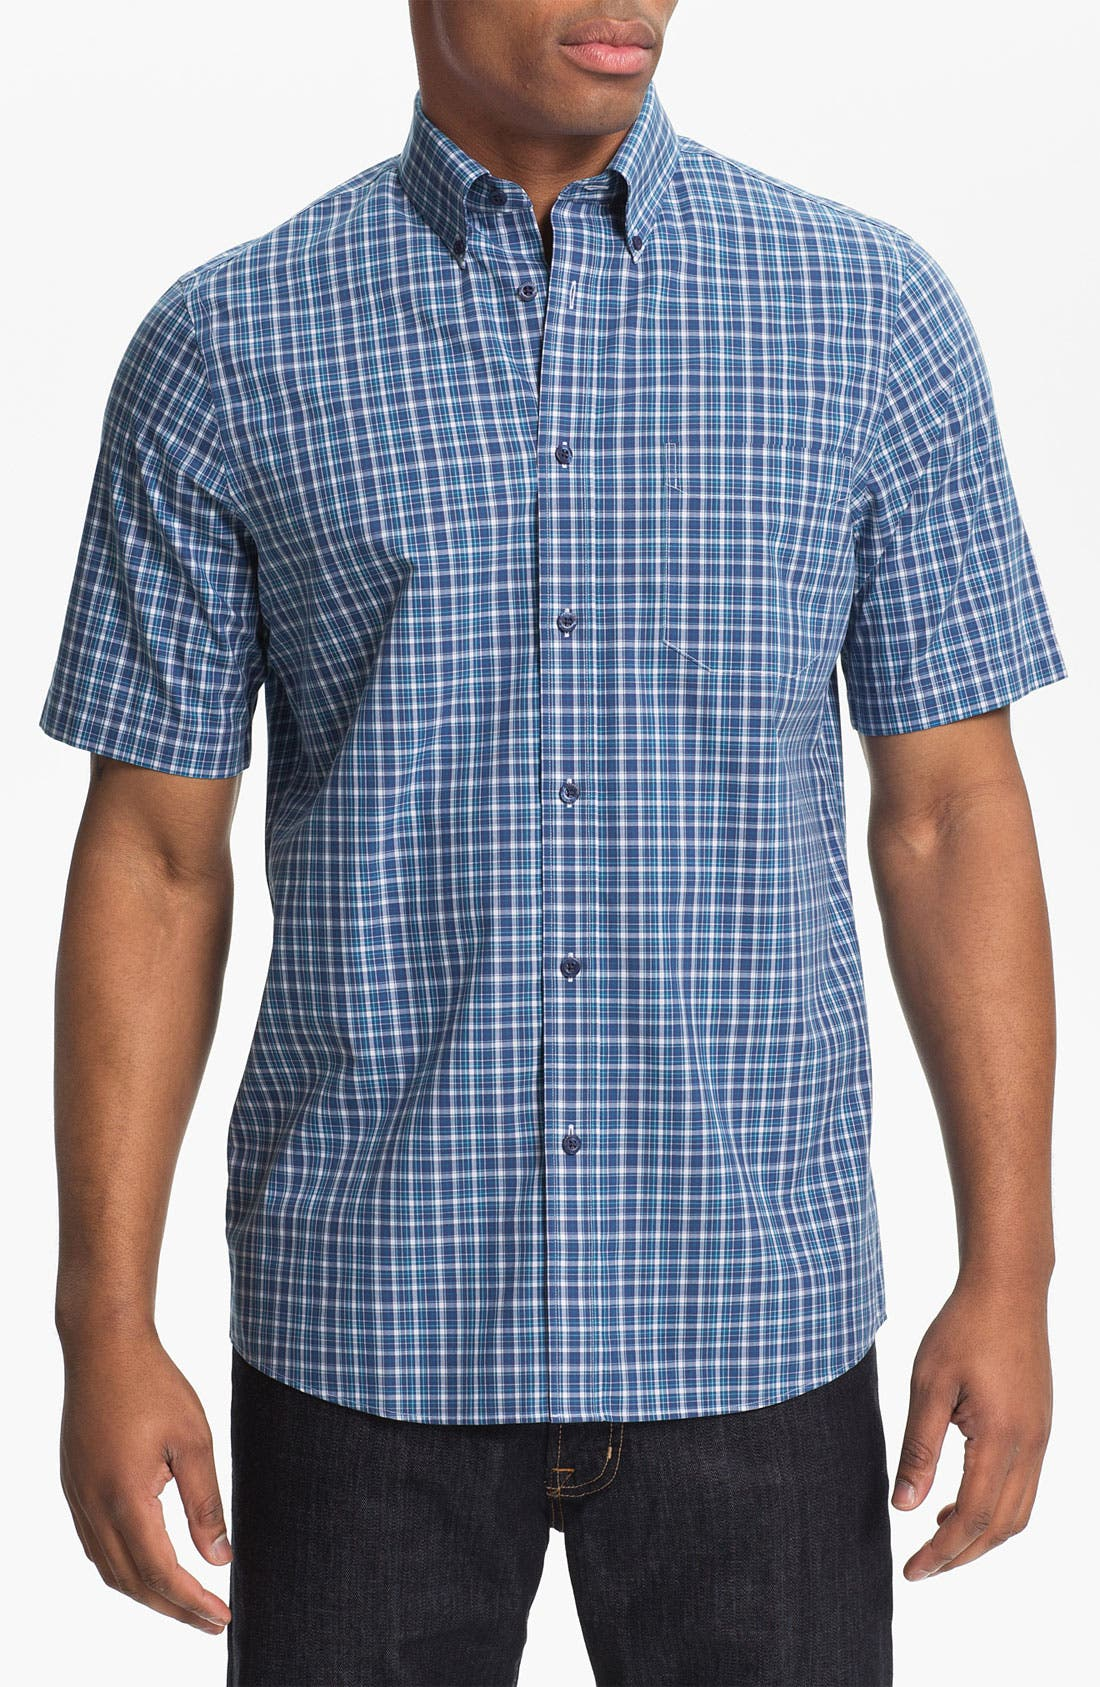 Alternate Image 1 Selected - Nordstrom Smartcare™ Regular Fit Sport Shirt